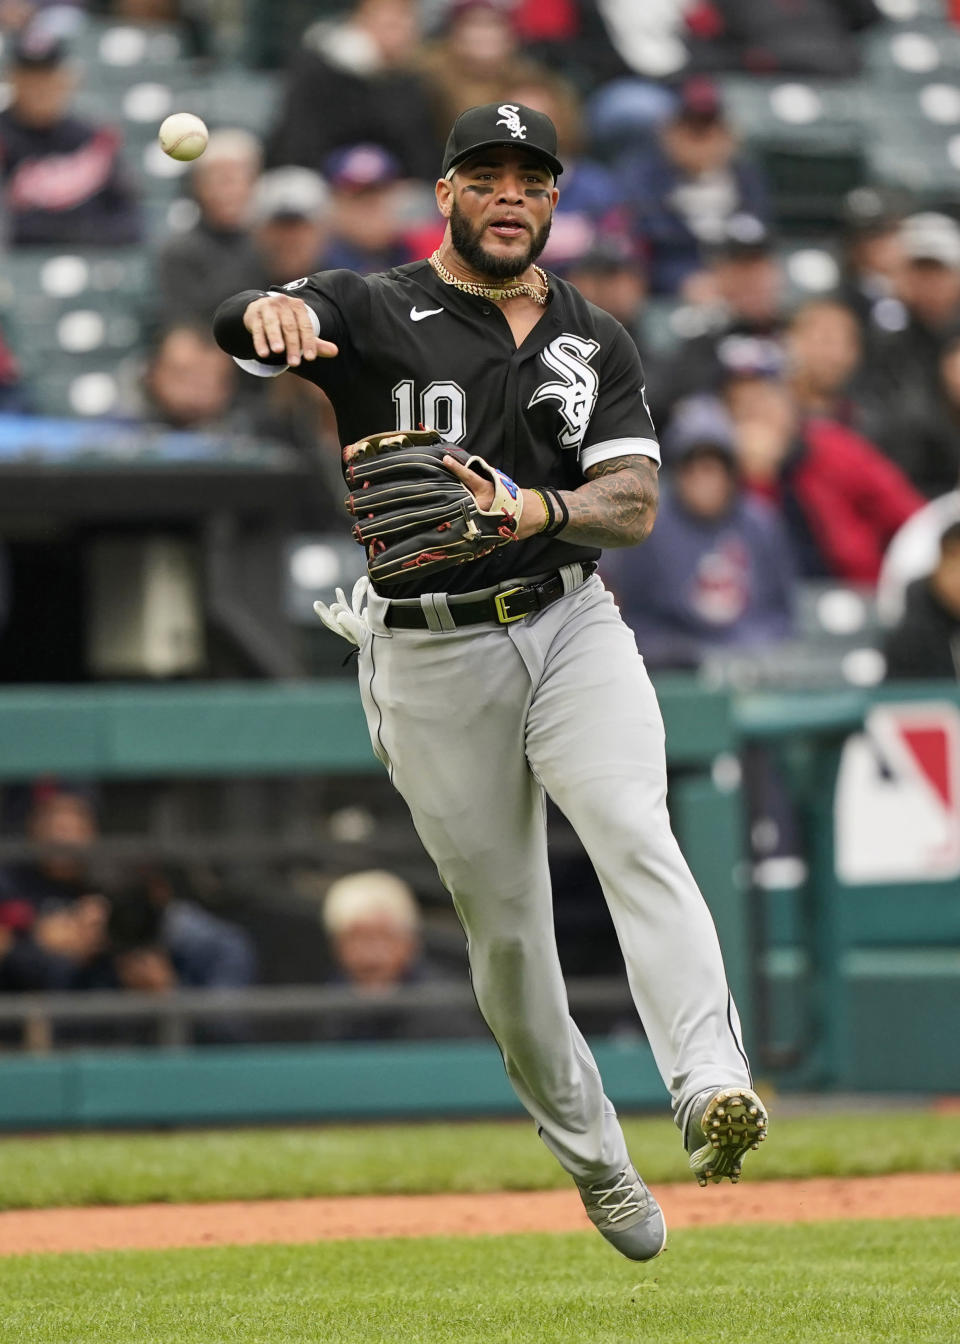 Chicago White Sox's Yoan Moncada throws out Cleveland Indians' Austin Hedges in the fifth inning in the first baseball game of a doubleheader, Thursday, Sept. 23, 2021, in Cleveland. (AP Photo/Tony Dejak)